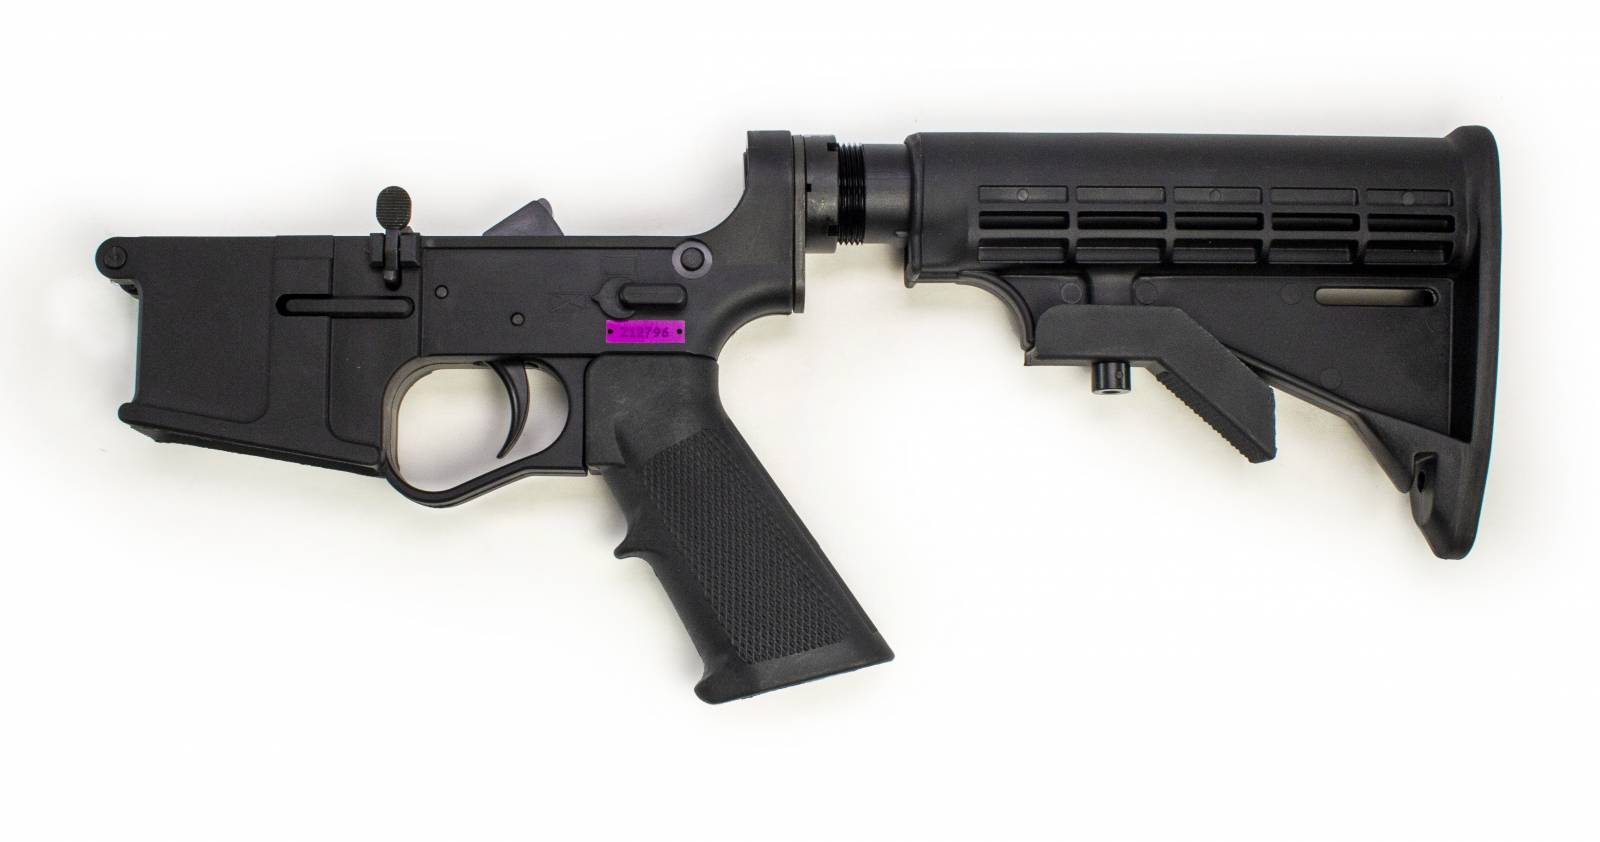 E3 Arms Plumcrazy Gen II AR 15 Complete Lower Receiver with Polymer Buffer Tube